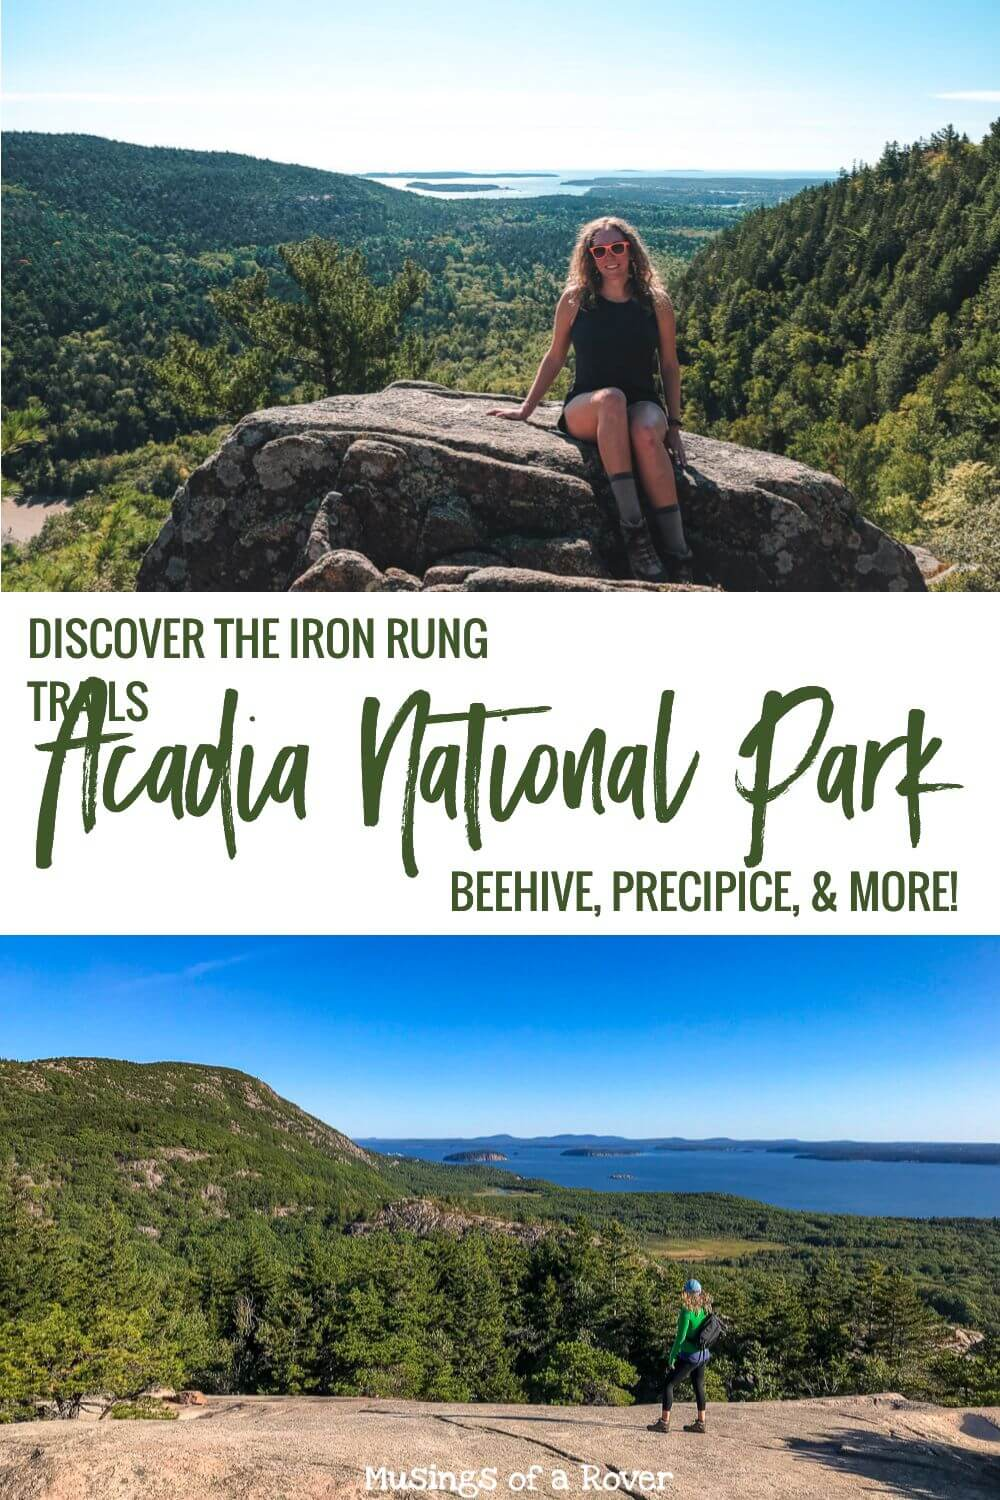 The iron rung trails of Acadia National Park are the most iconic hikes. They're challenging and a bit scary, but they have the most amazing views. They are one of my favorite things to do in the Bar Harbor area. Discover all 4 so you can add the best one to your trip's itinerary.